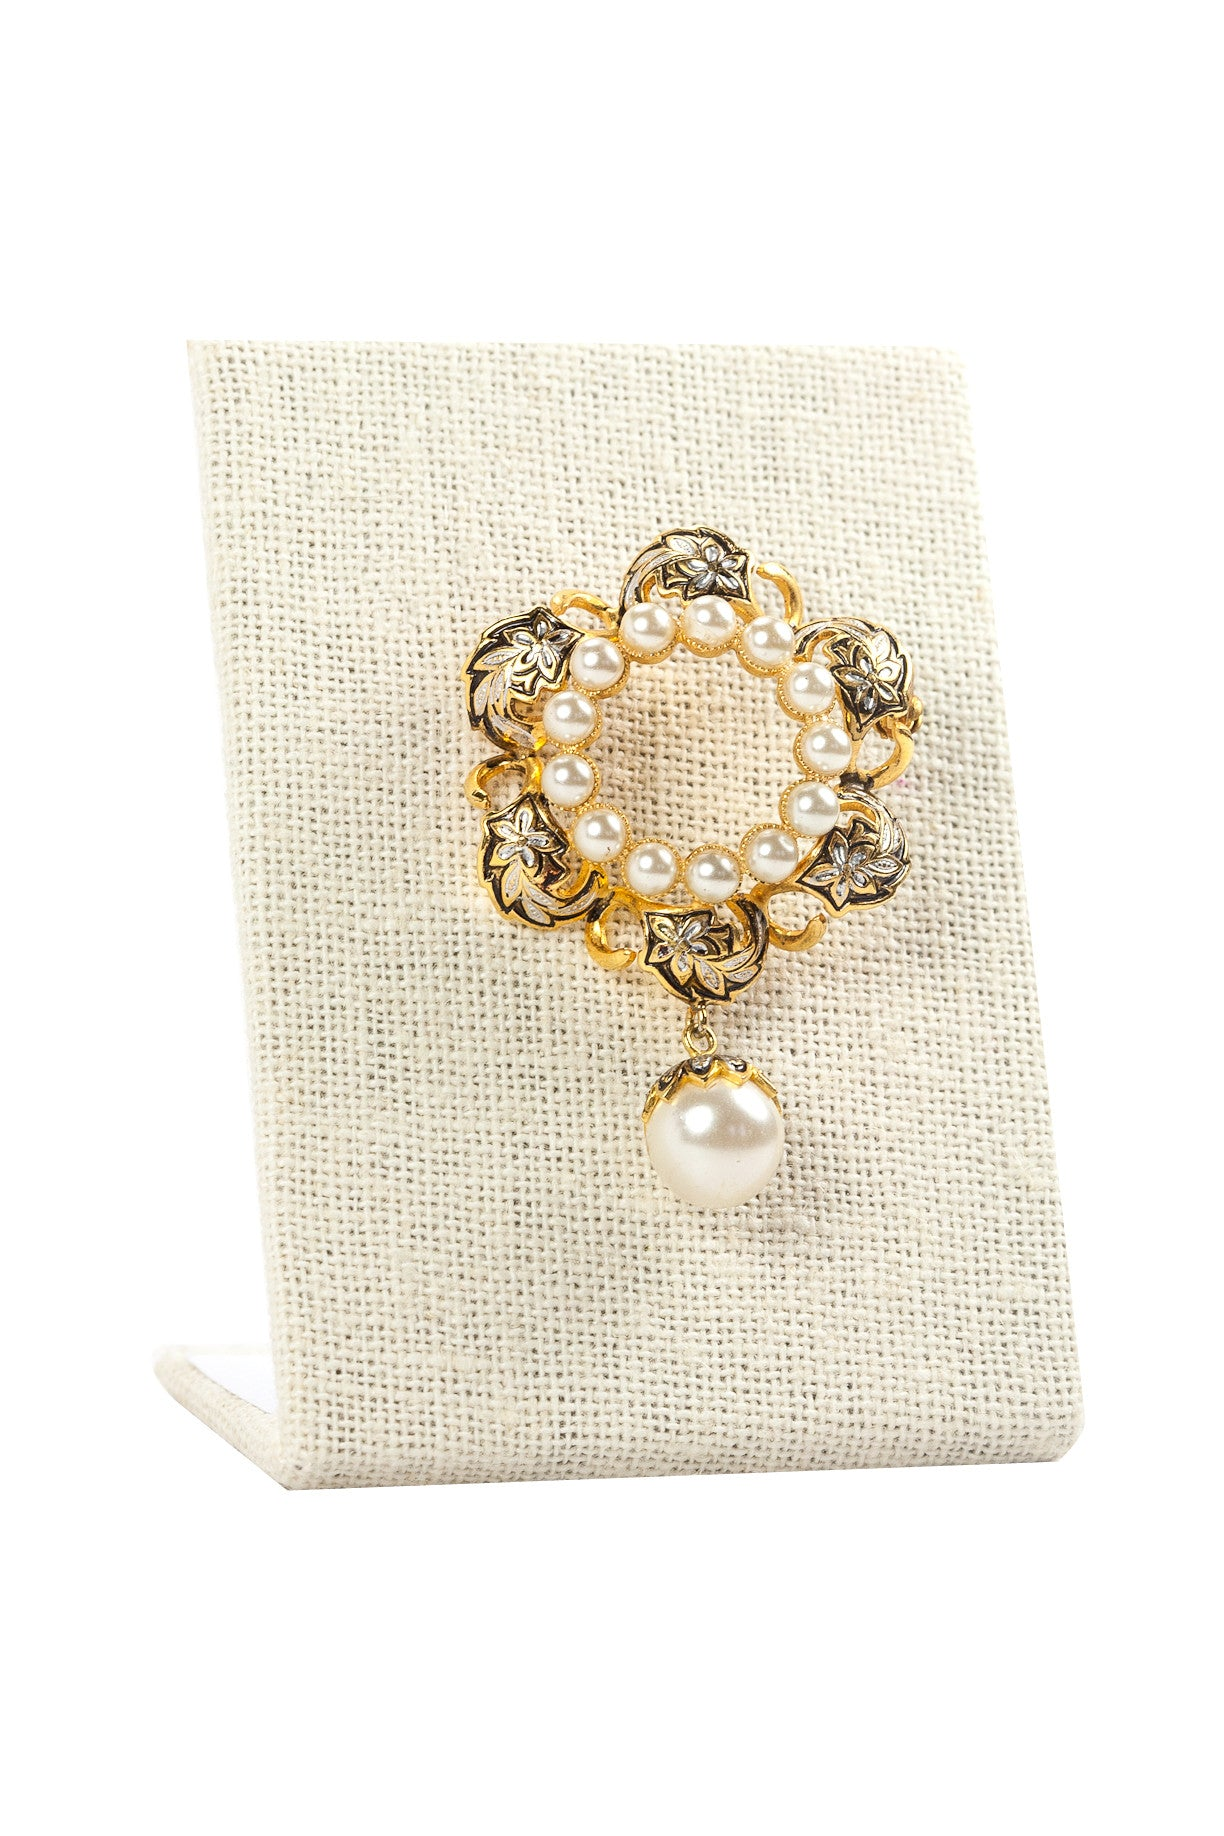 50's__Spain__Pearl Drop Brooch